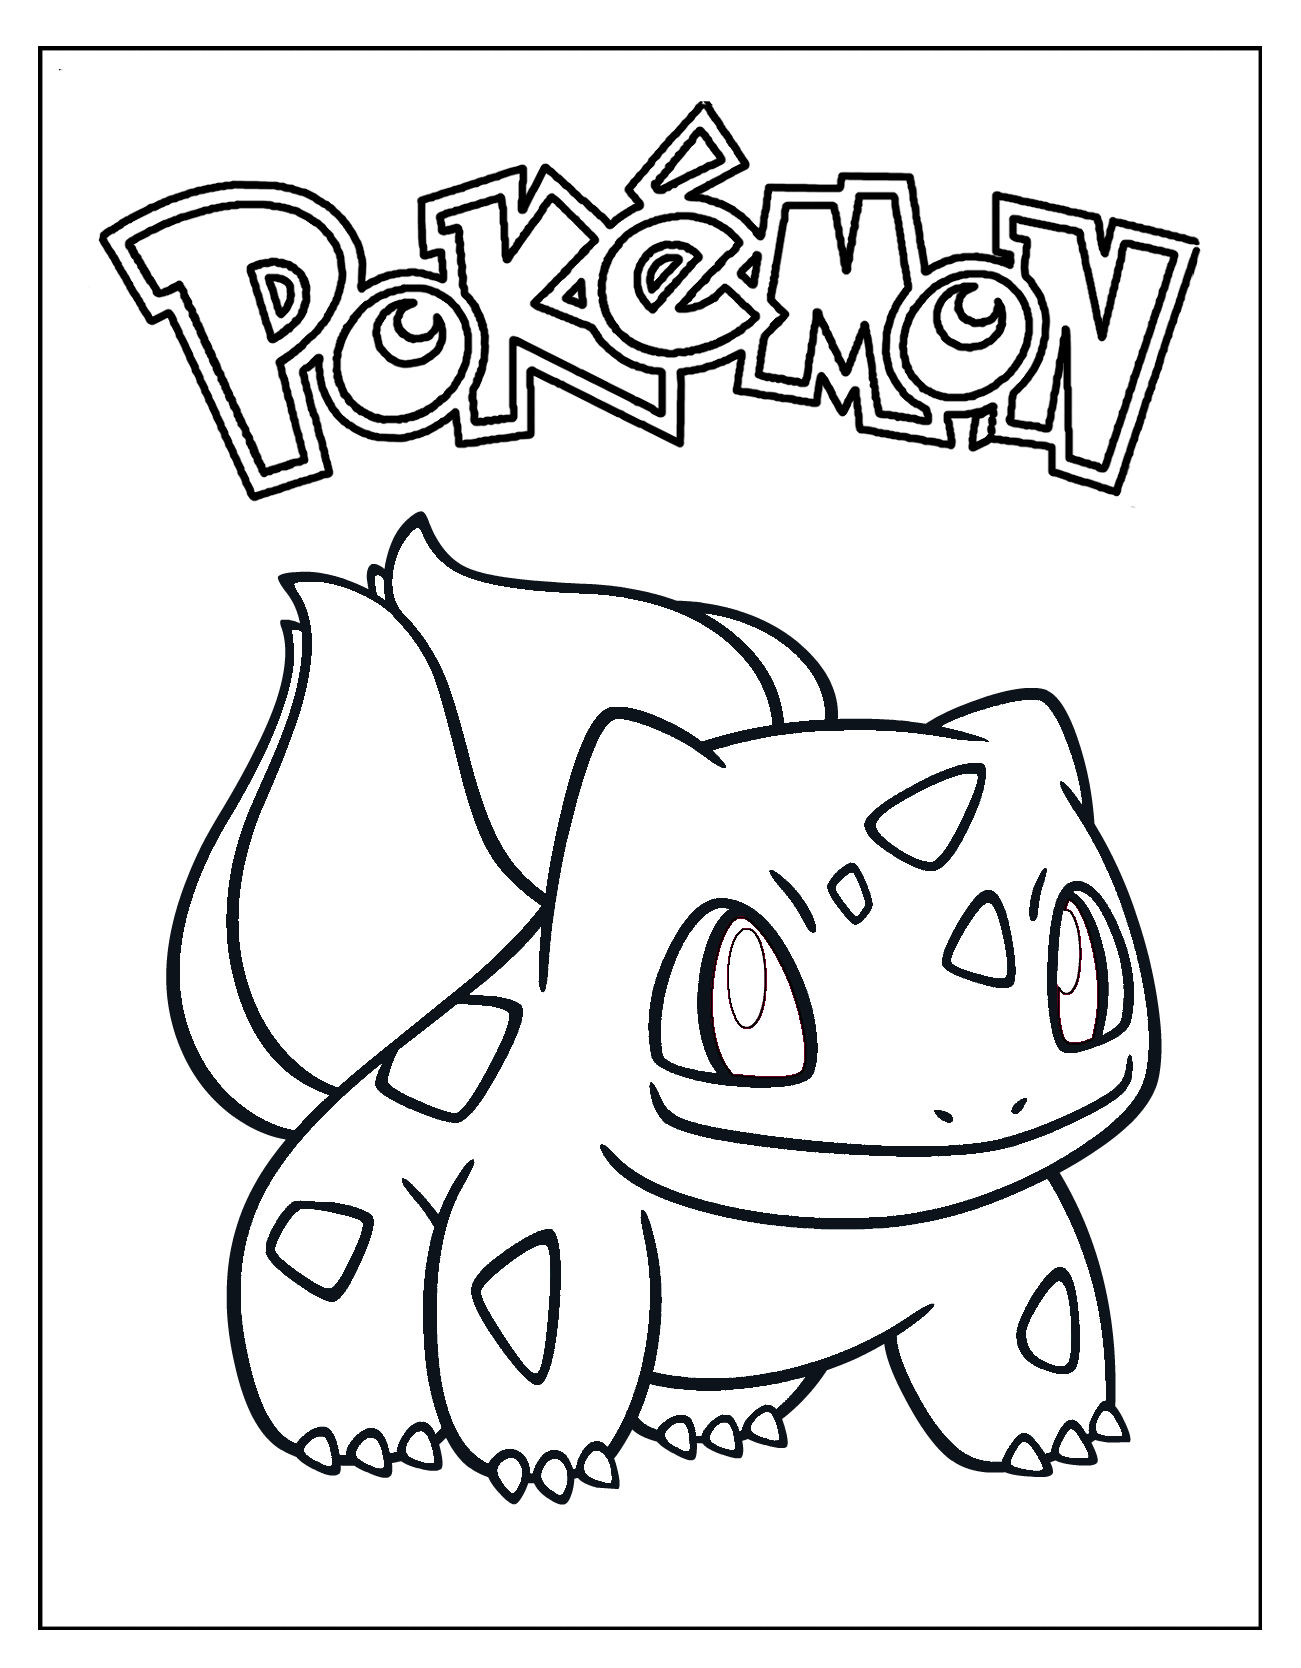 Bulbasaur Coloring Page Xl Background